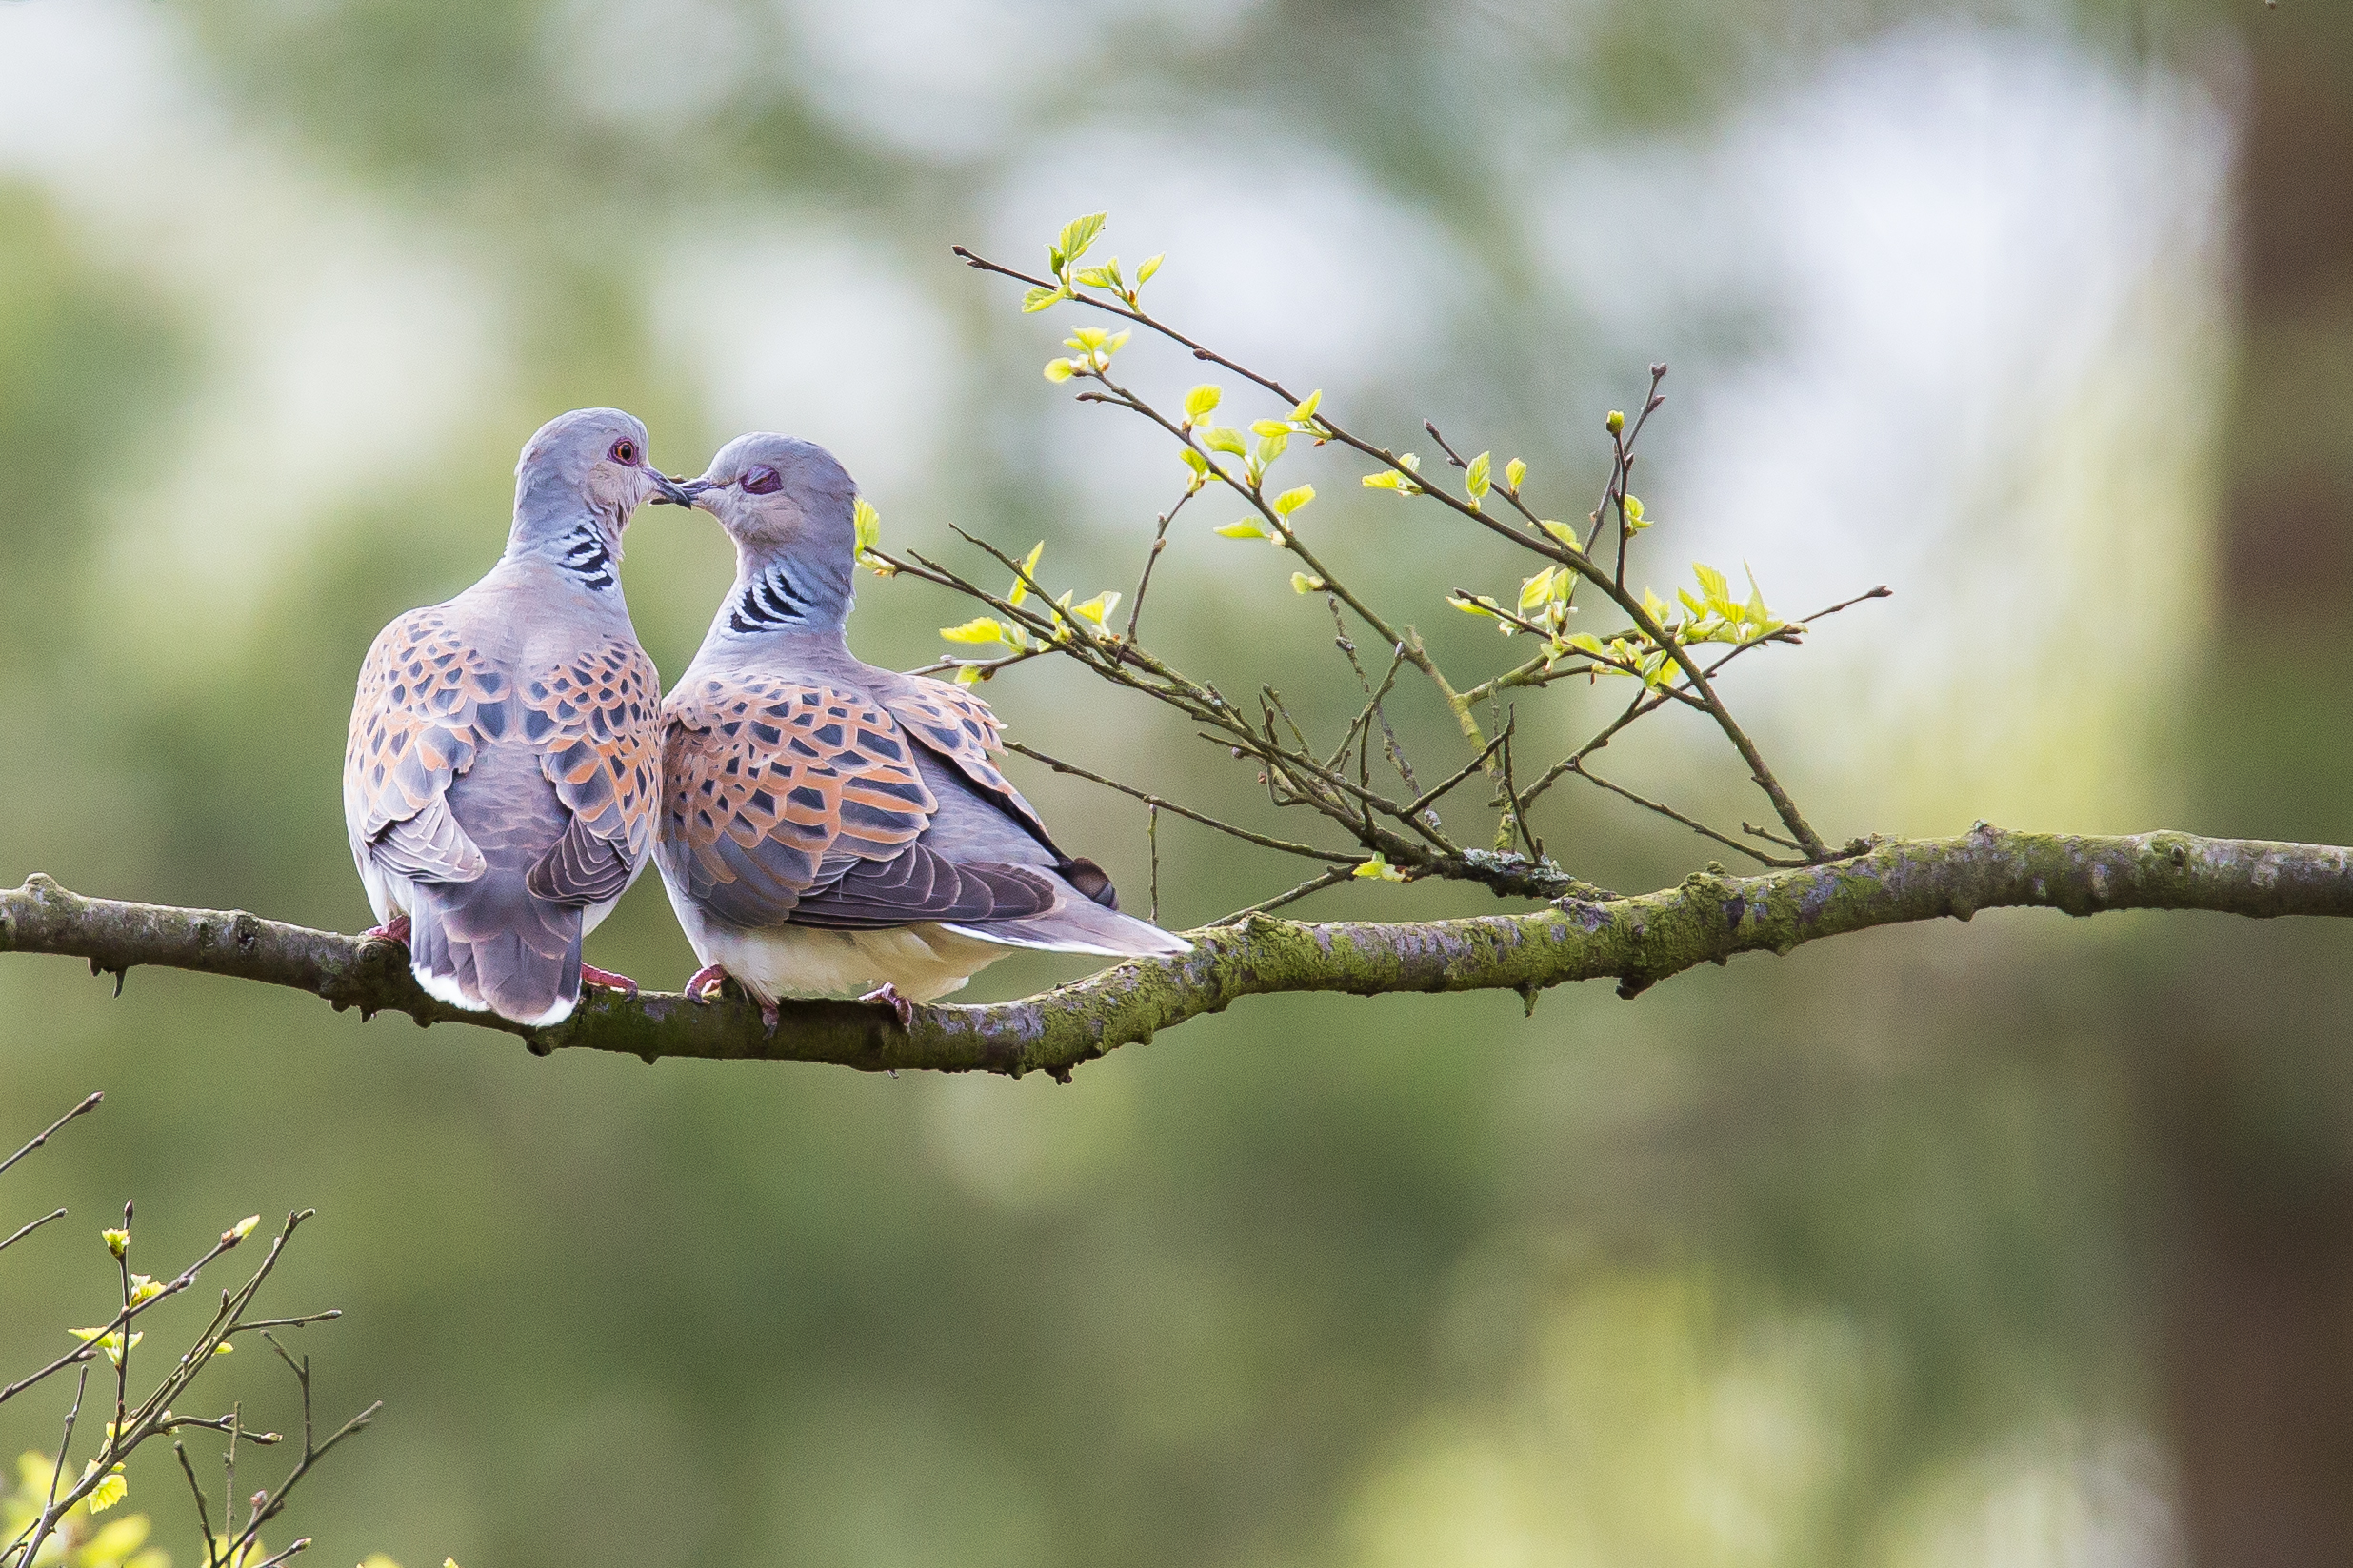 A Date with a Dove